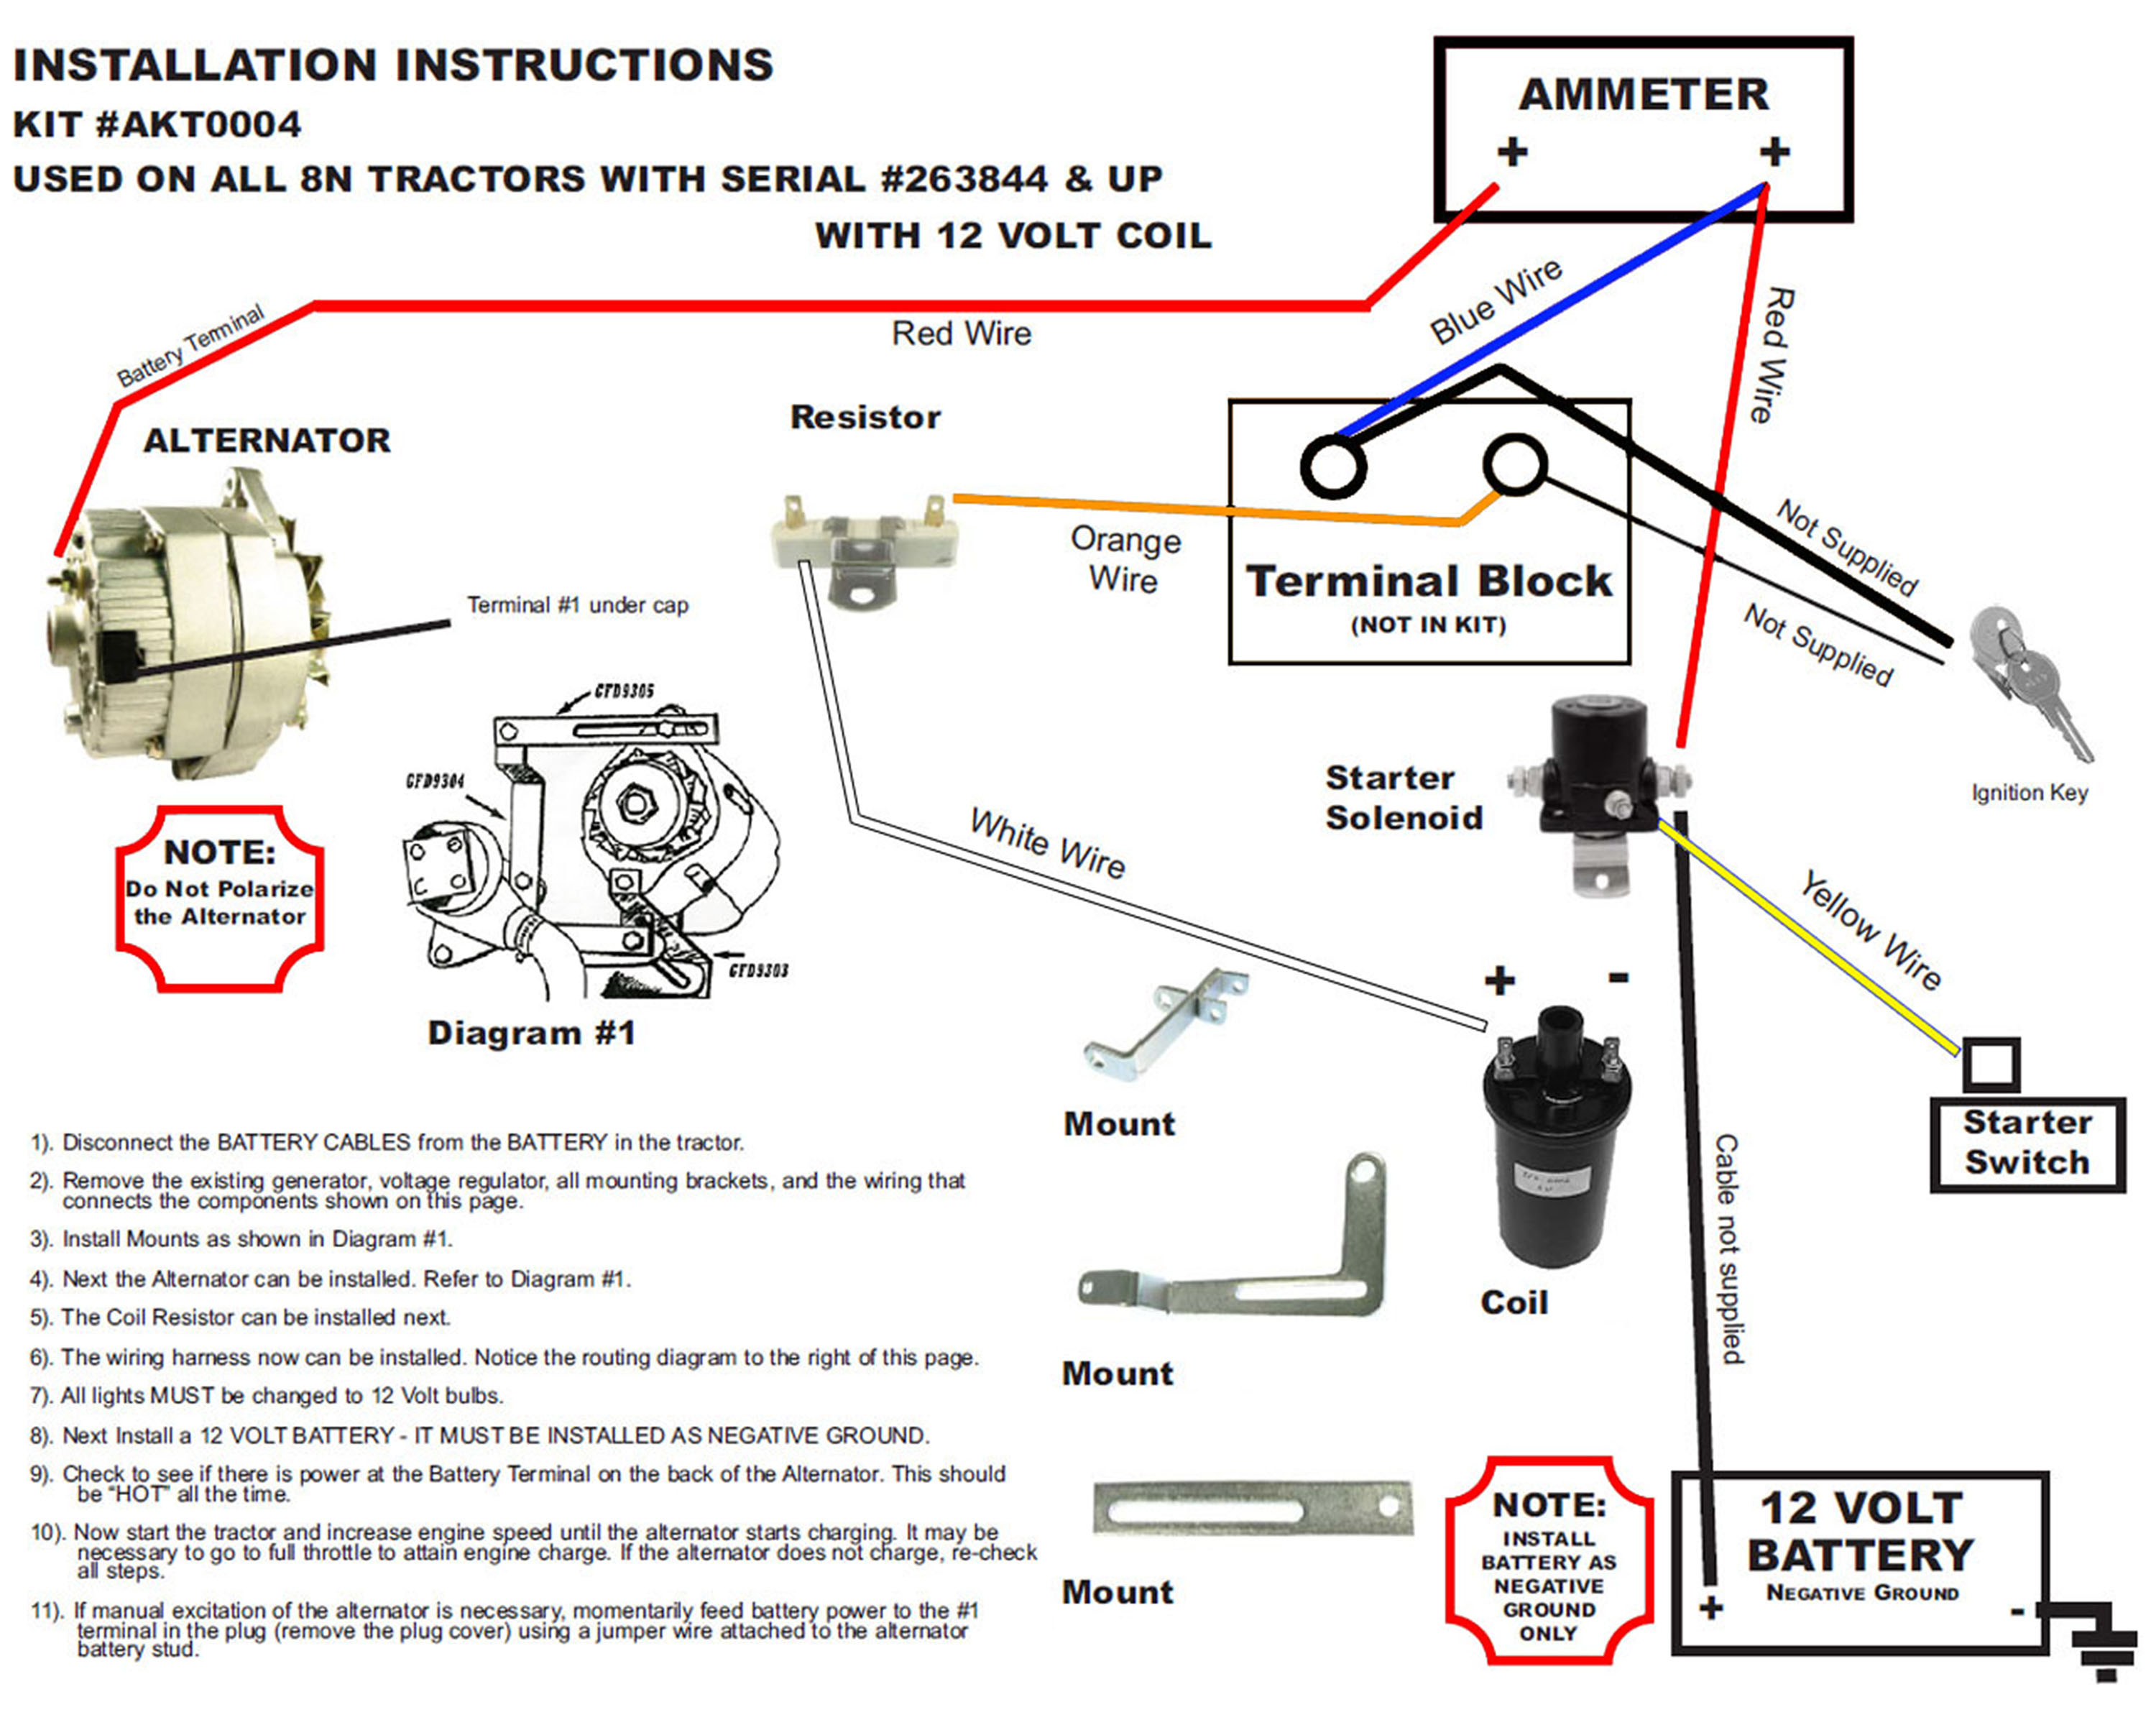 12 Volt Wiring Diagram Ford 8N Tractor 1 Wire Alternator - Wiring - 12 Volt Alternator Wiring Diagram